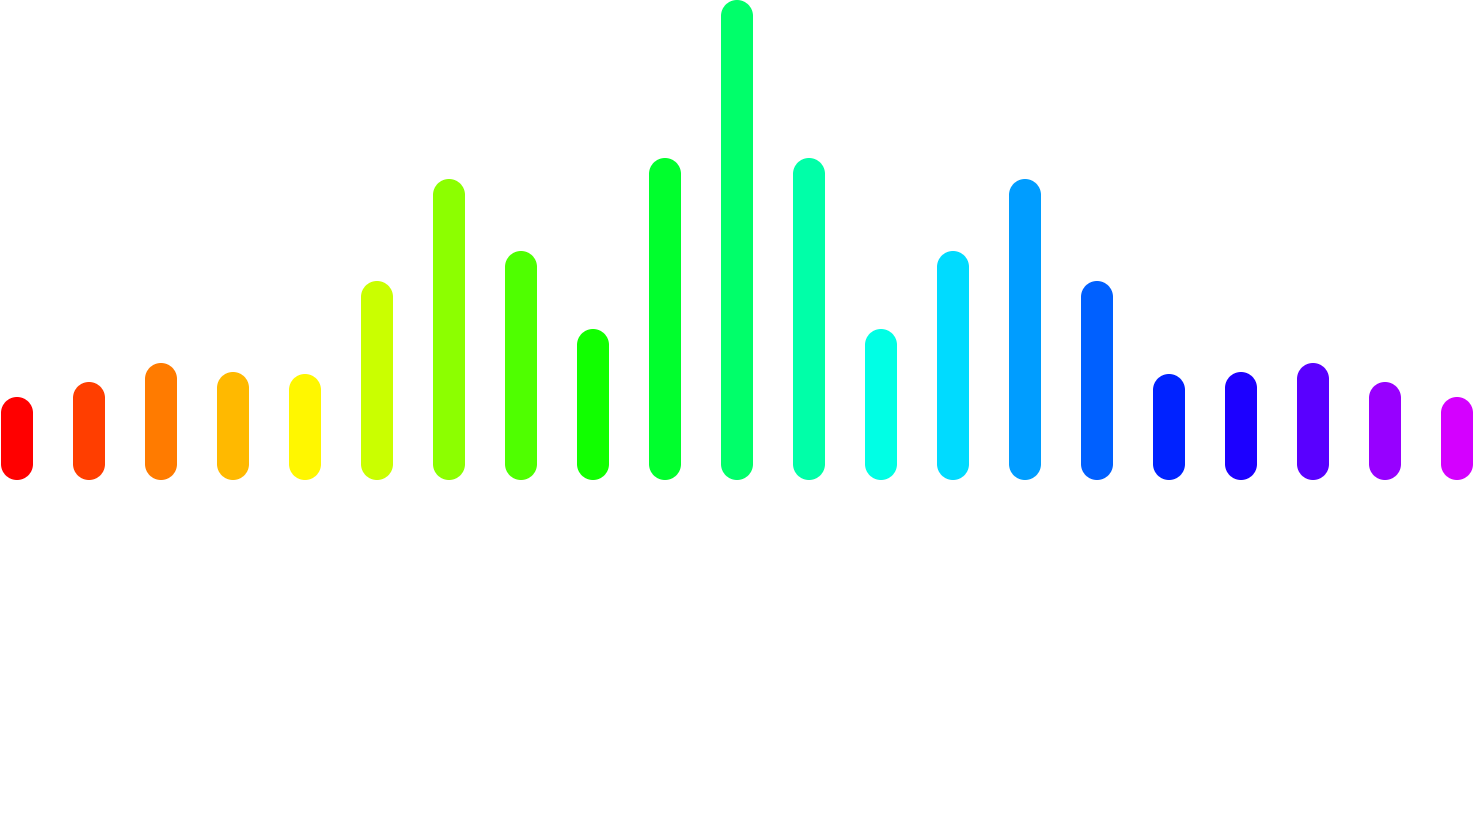 Optical Frequency Comb Spectroscopy Group